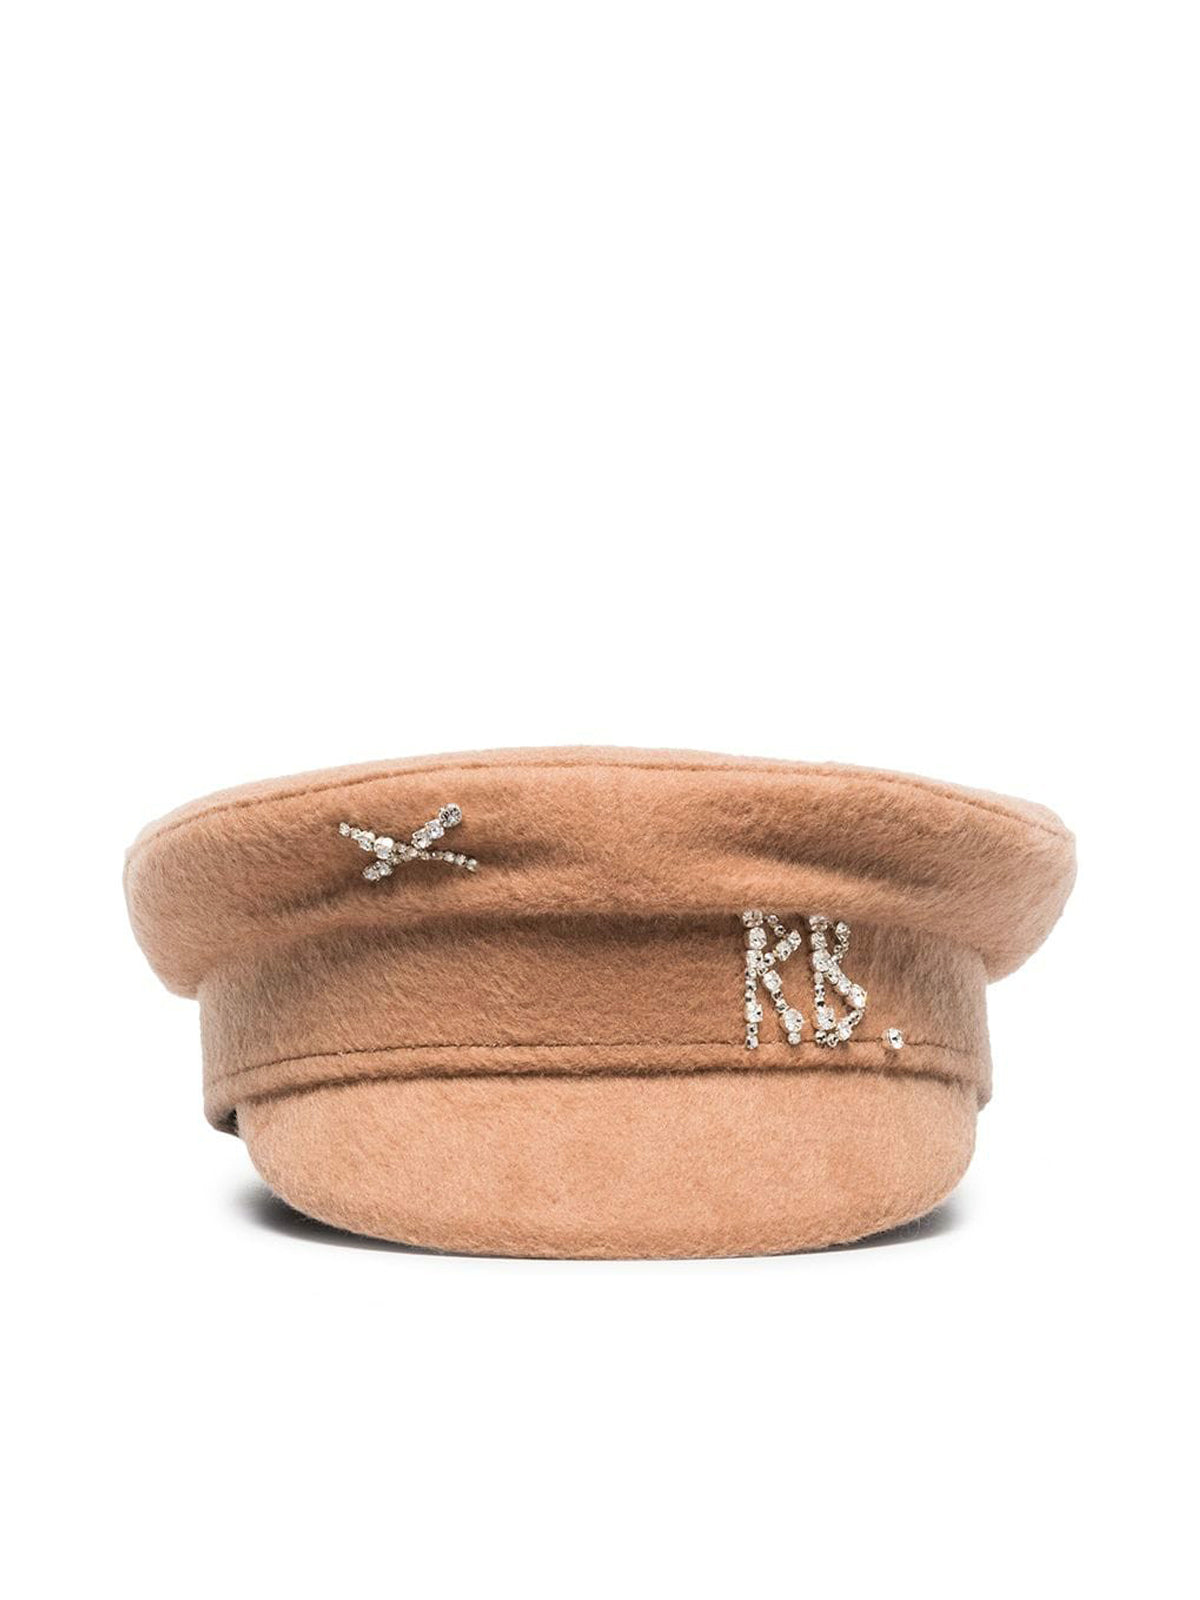 logo-embellished baker boy hat